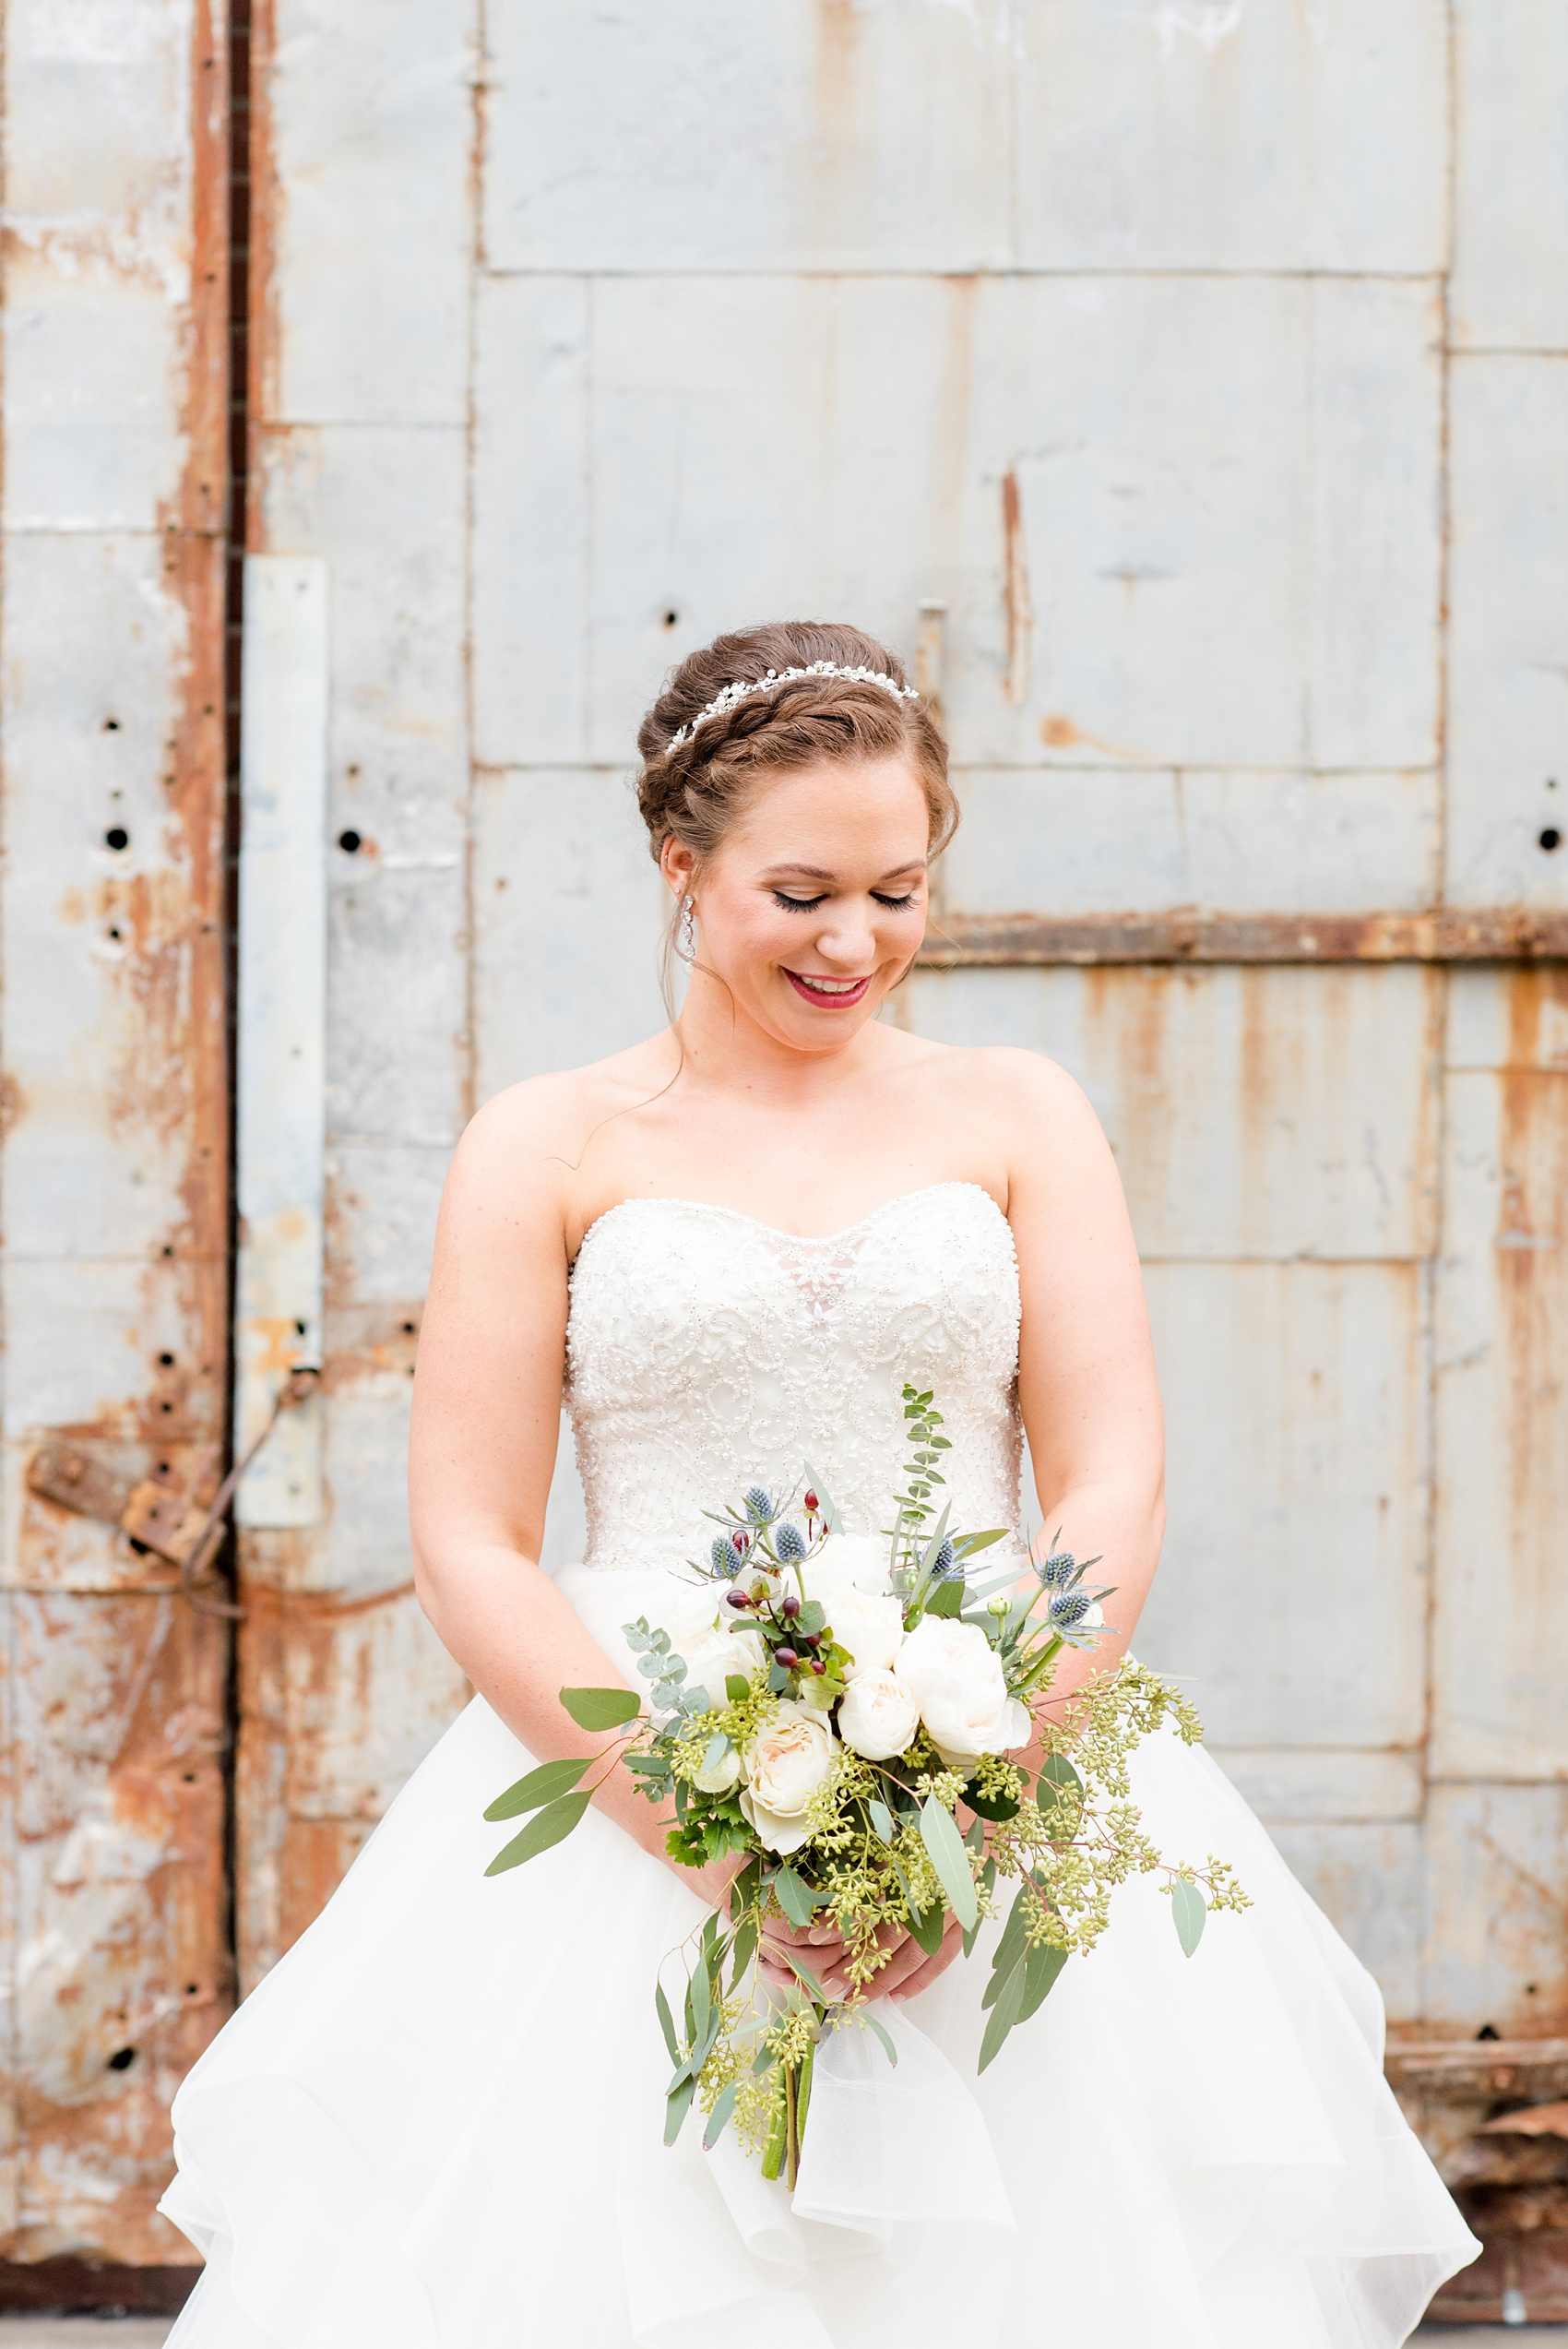 Durham wedding photos at The Cookery by Mikkel Paige Photography in North Carolina. The bride wore a strapless beaded gown, braided up-do and held a bouquet of roses, blue thistle and eucalyptus for her winter day. In this picture she's posing in front of the venue's rustic doors.